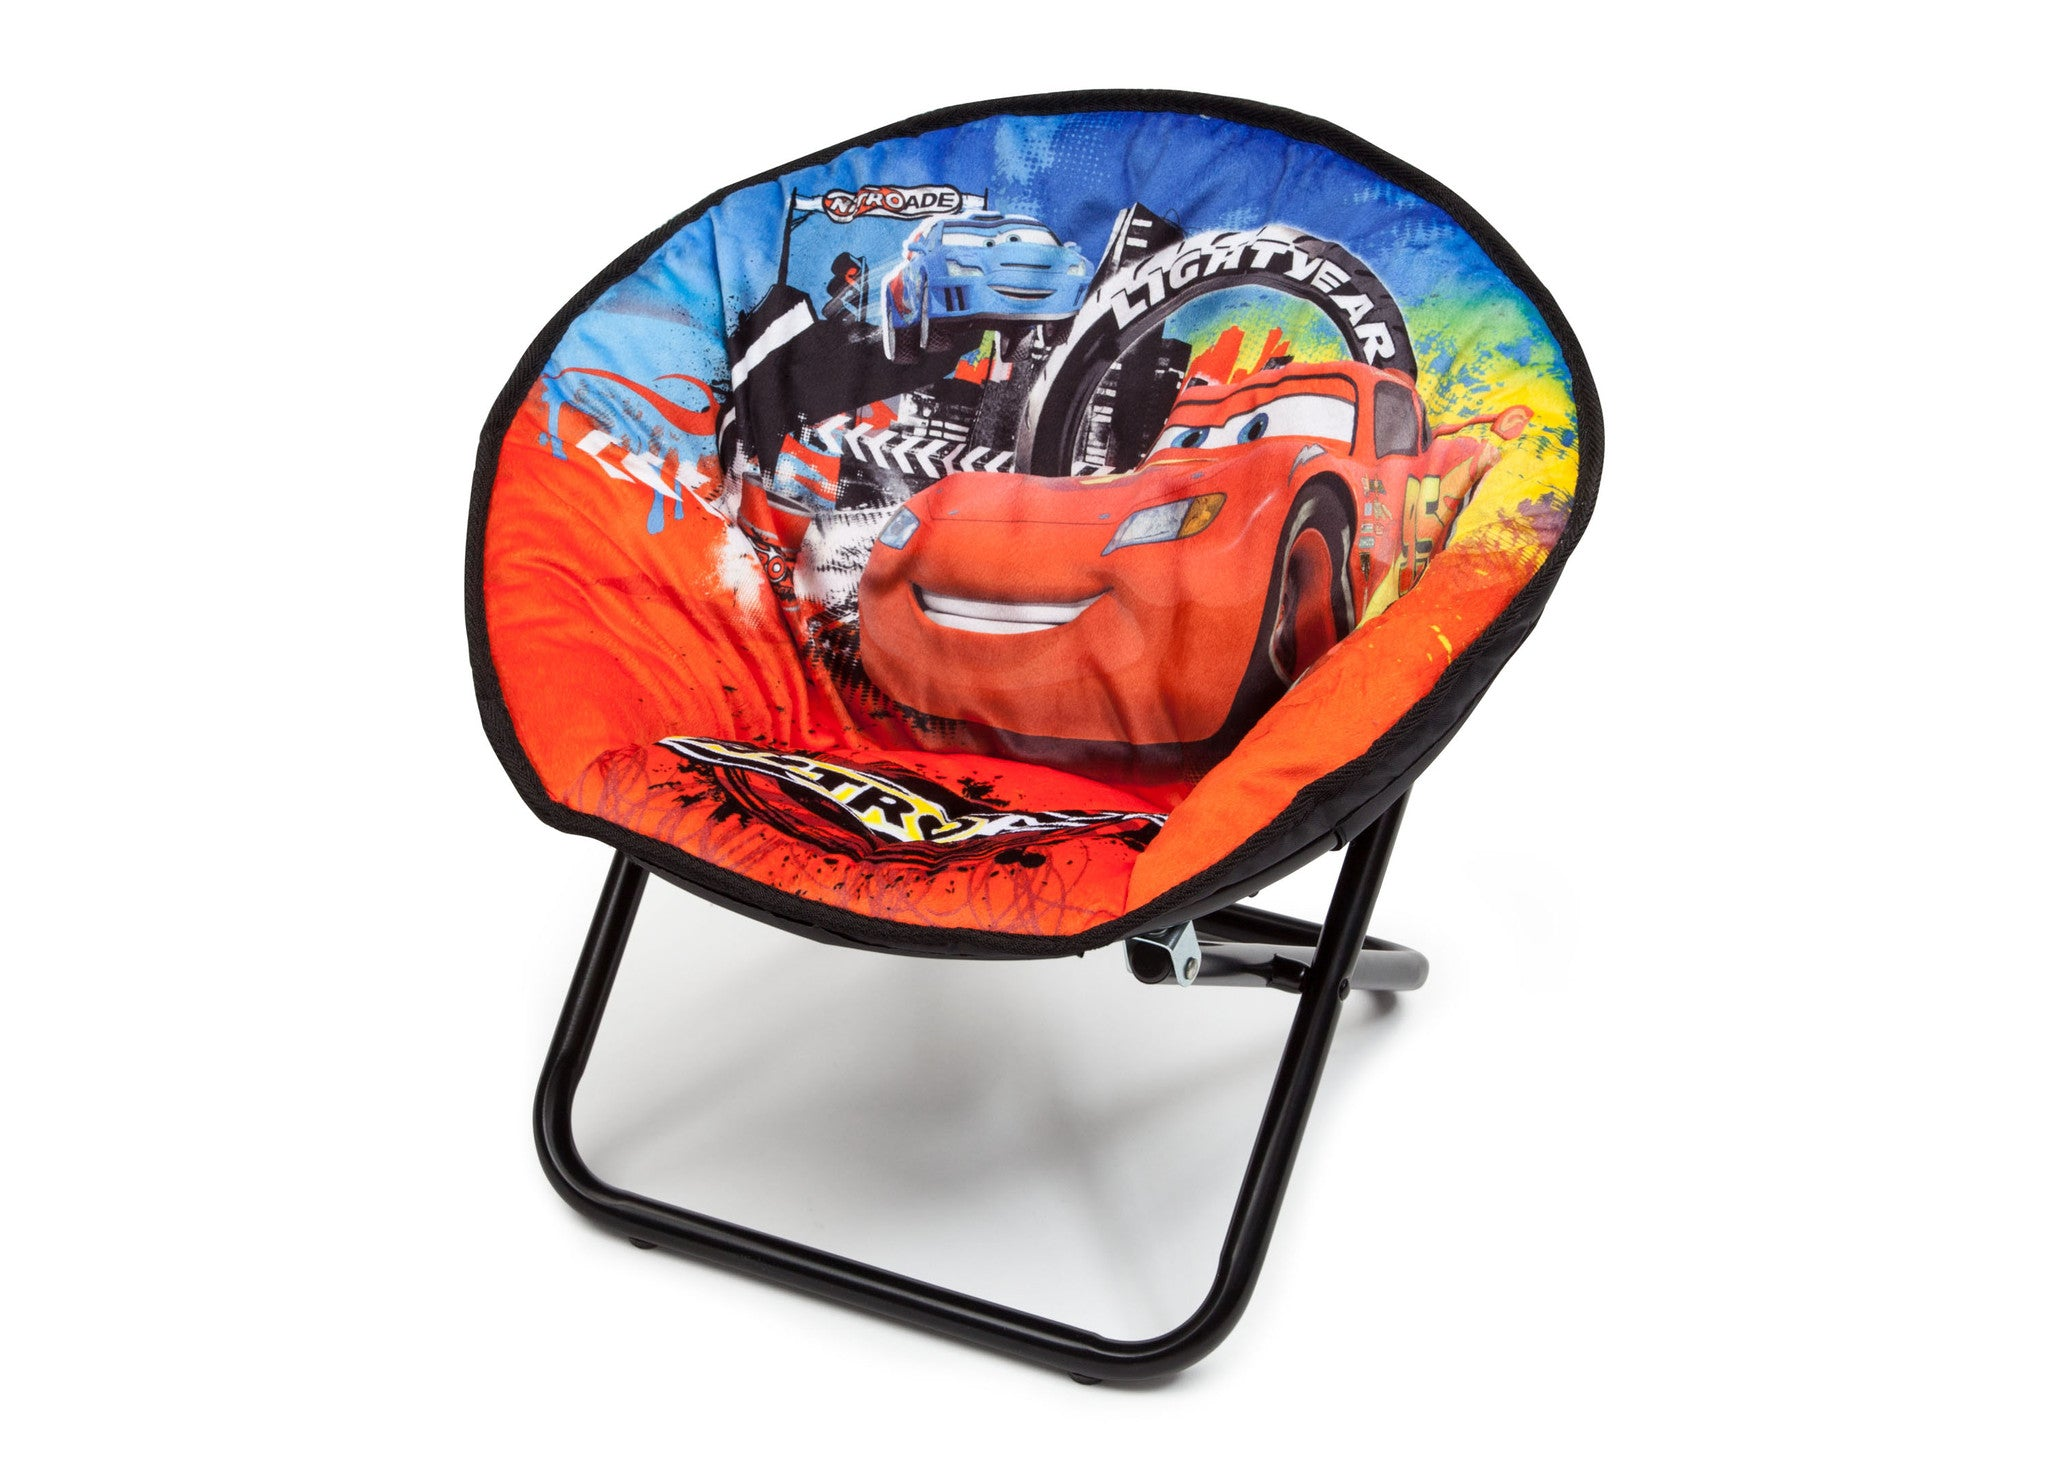 Cars Saucer Chair Delta Children Eu Pim